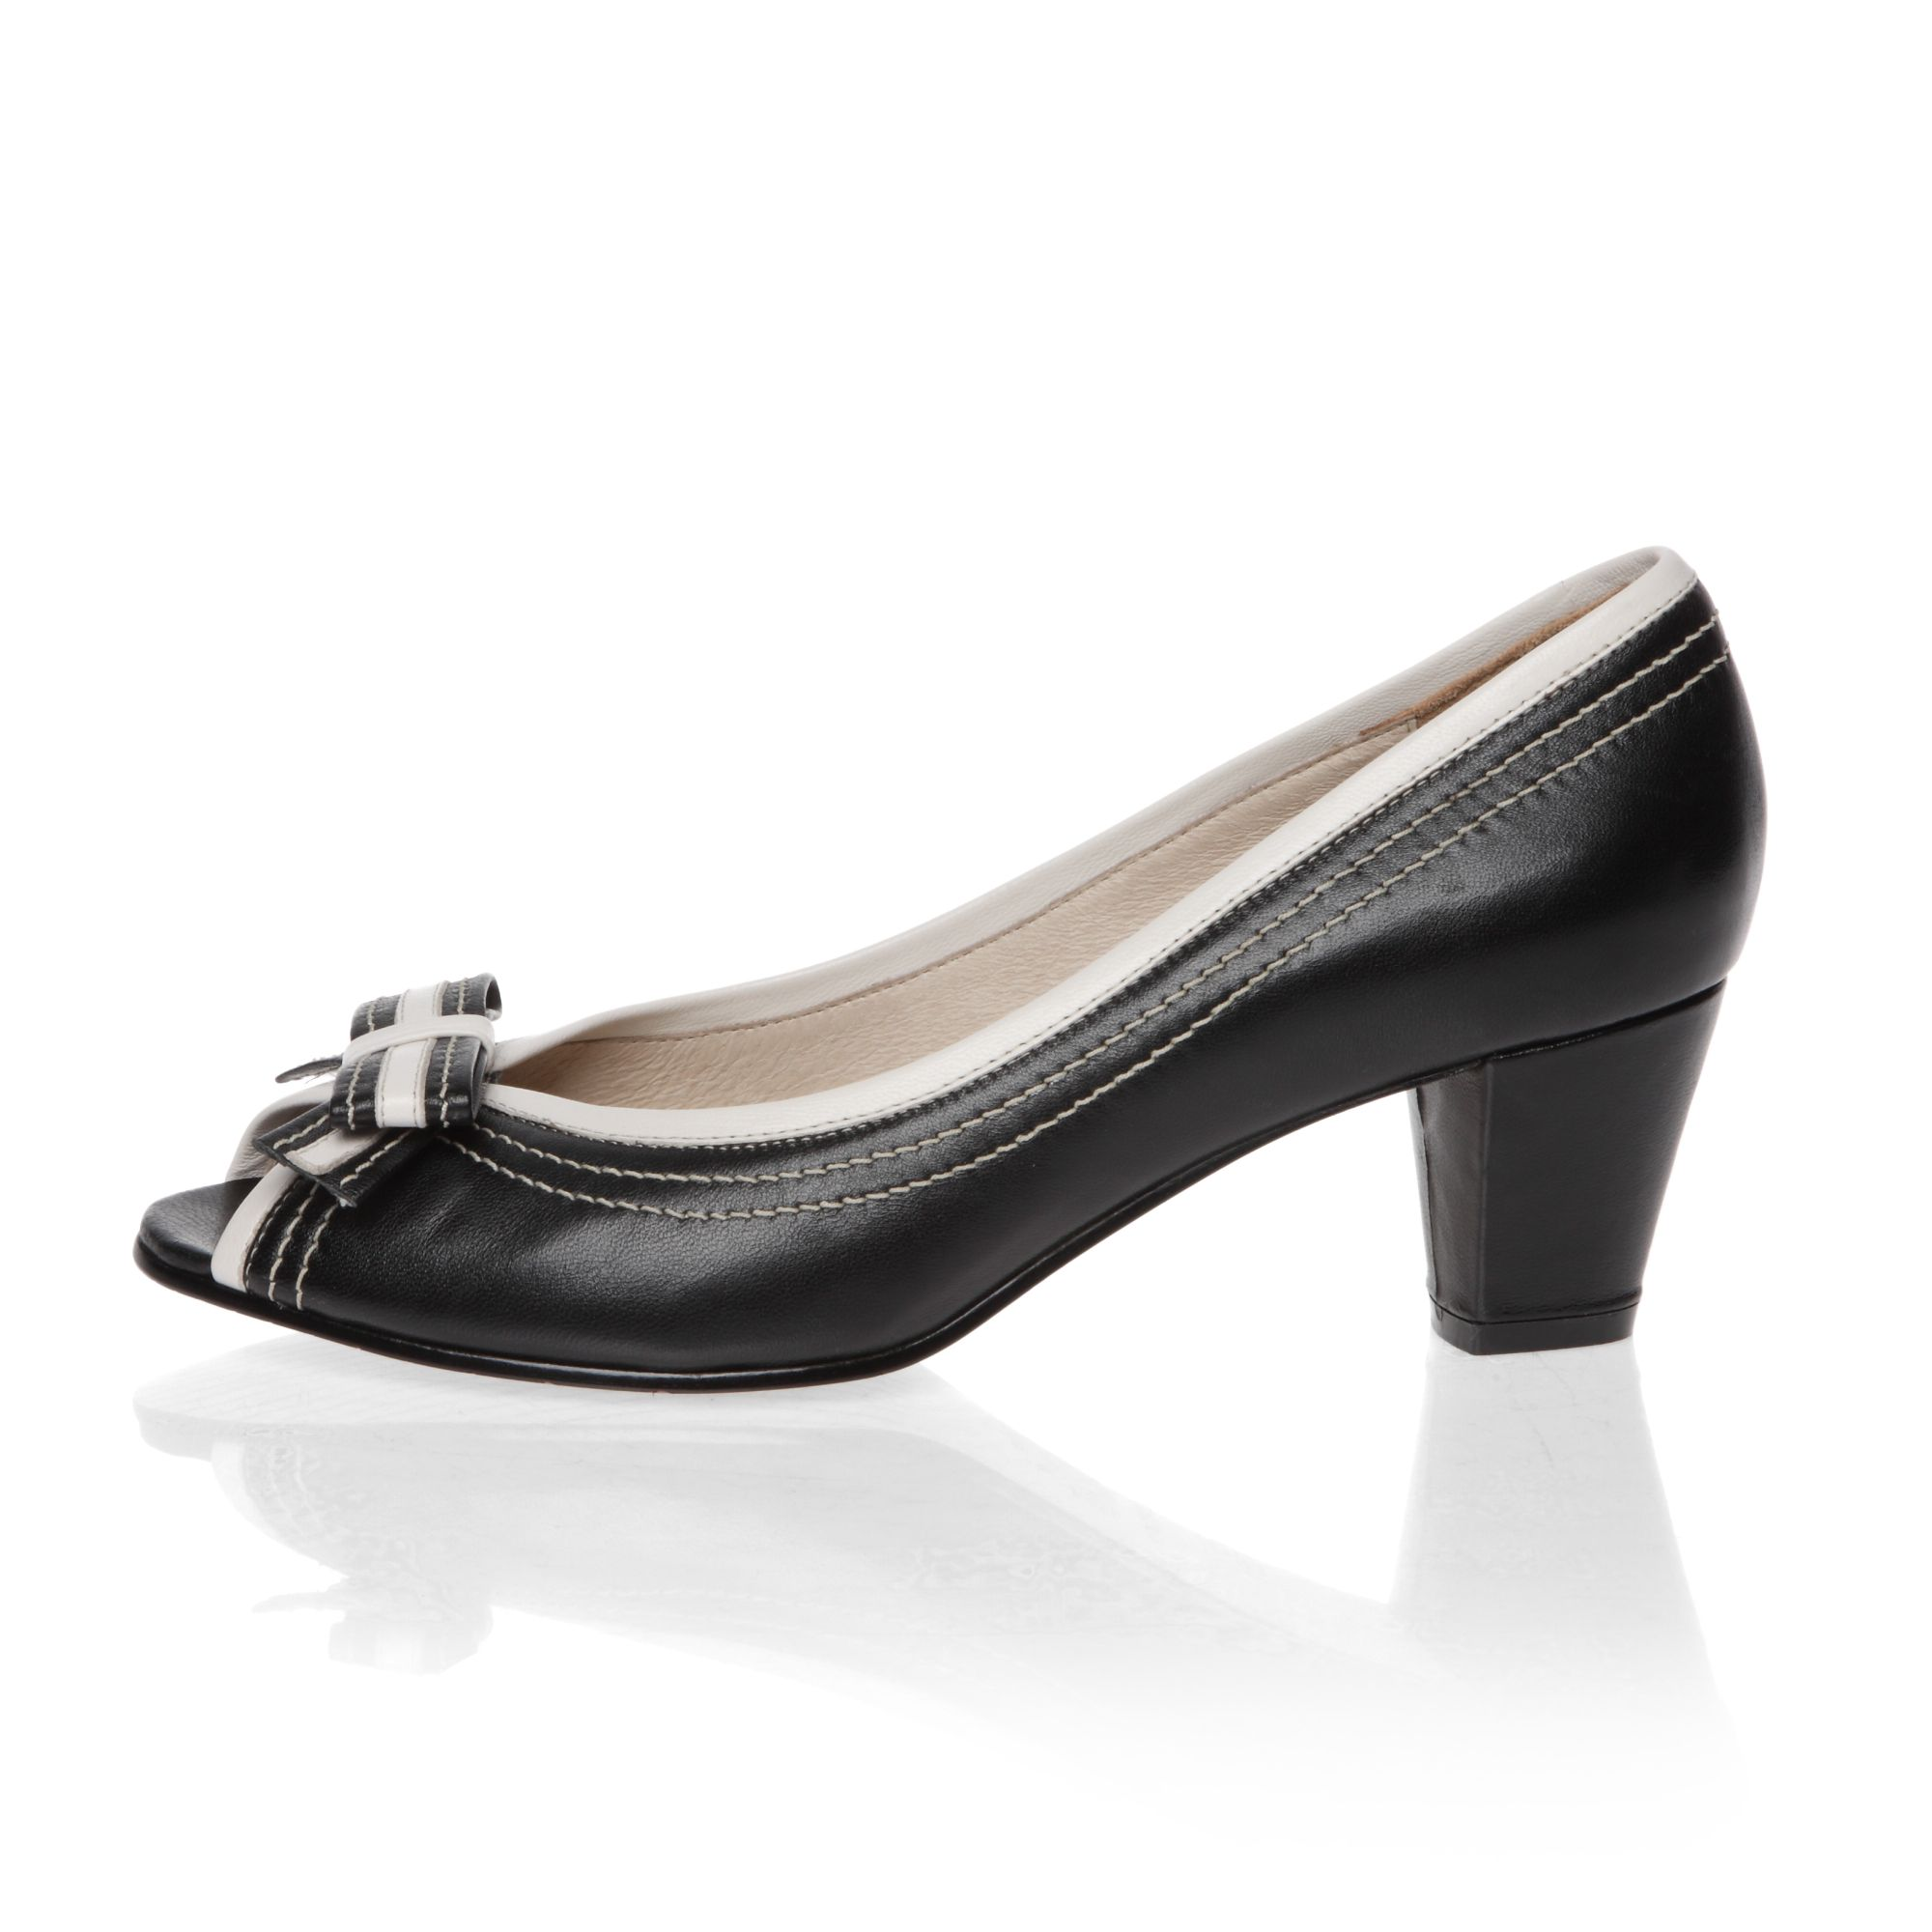 Mid heeled peep toe court shoes